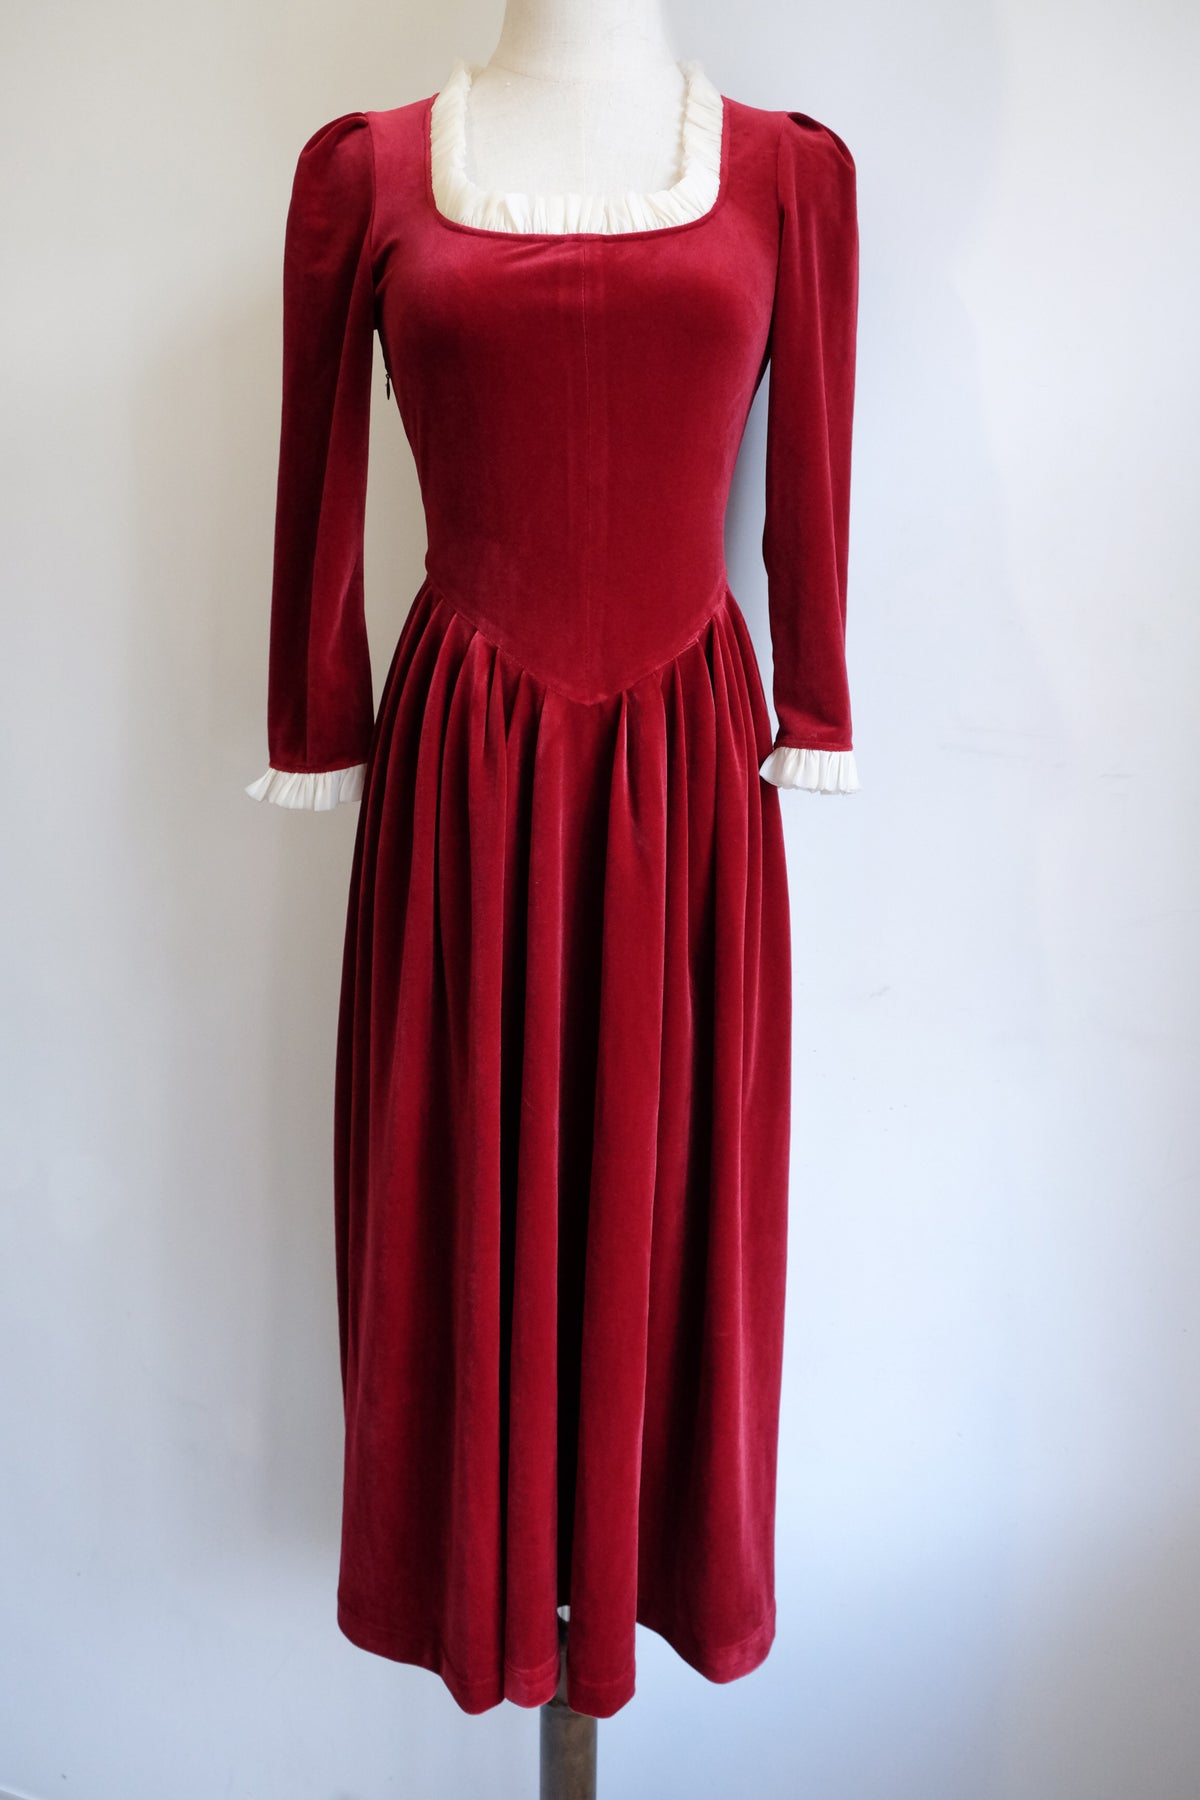 Image of SAMPLE SALE - Unreleased Dress 18